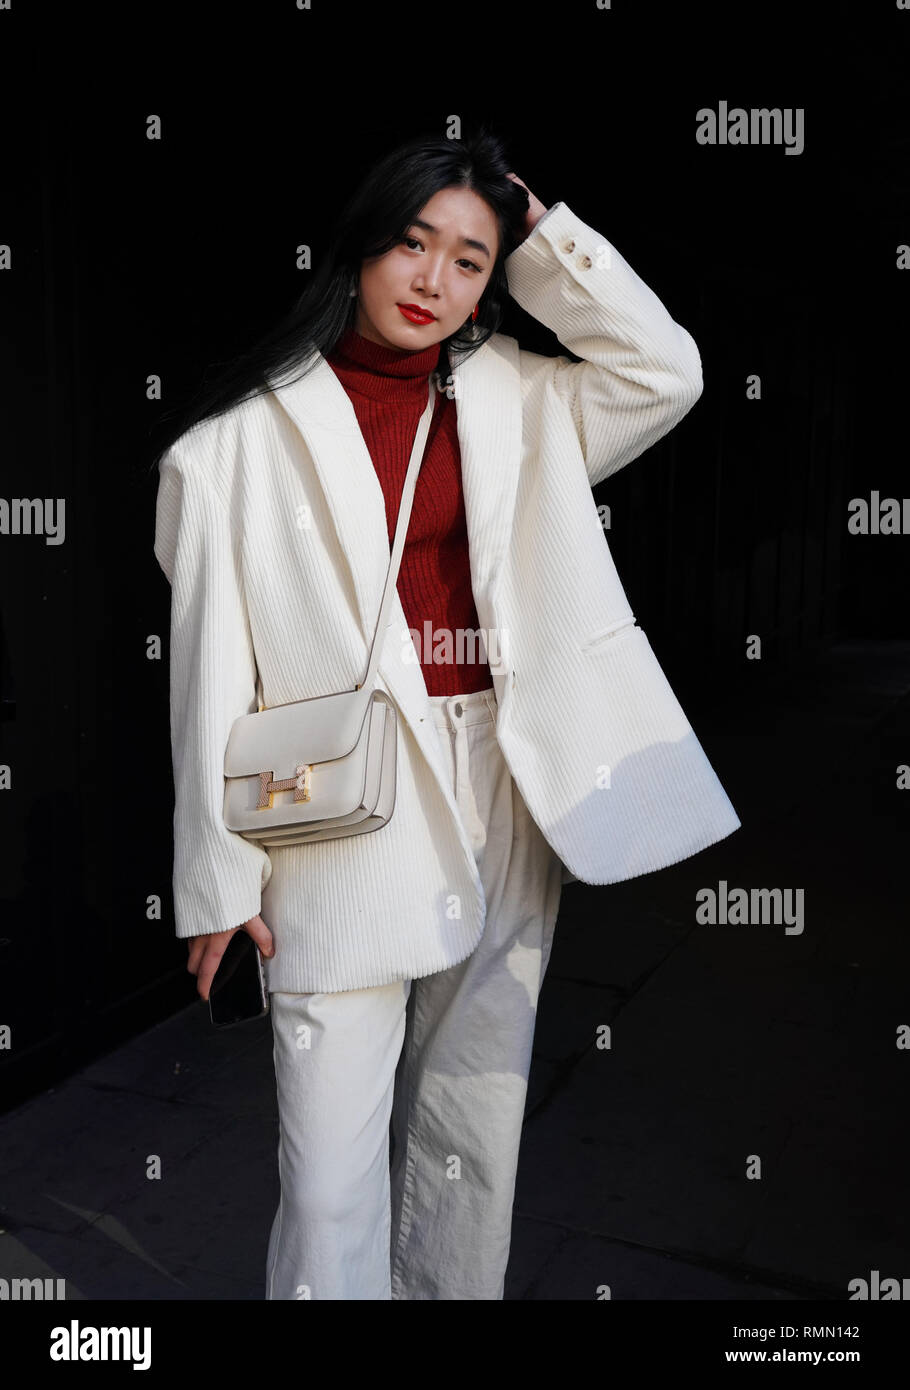 6a8fcc563bdd Fashionista dressed in white and wears a Hermes bag during the Autumn   Winter 2019 London